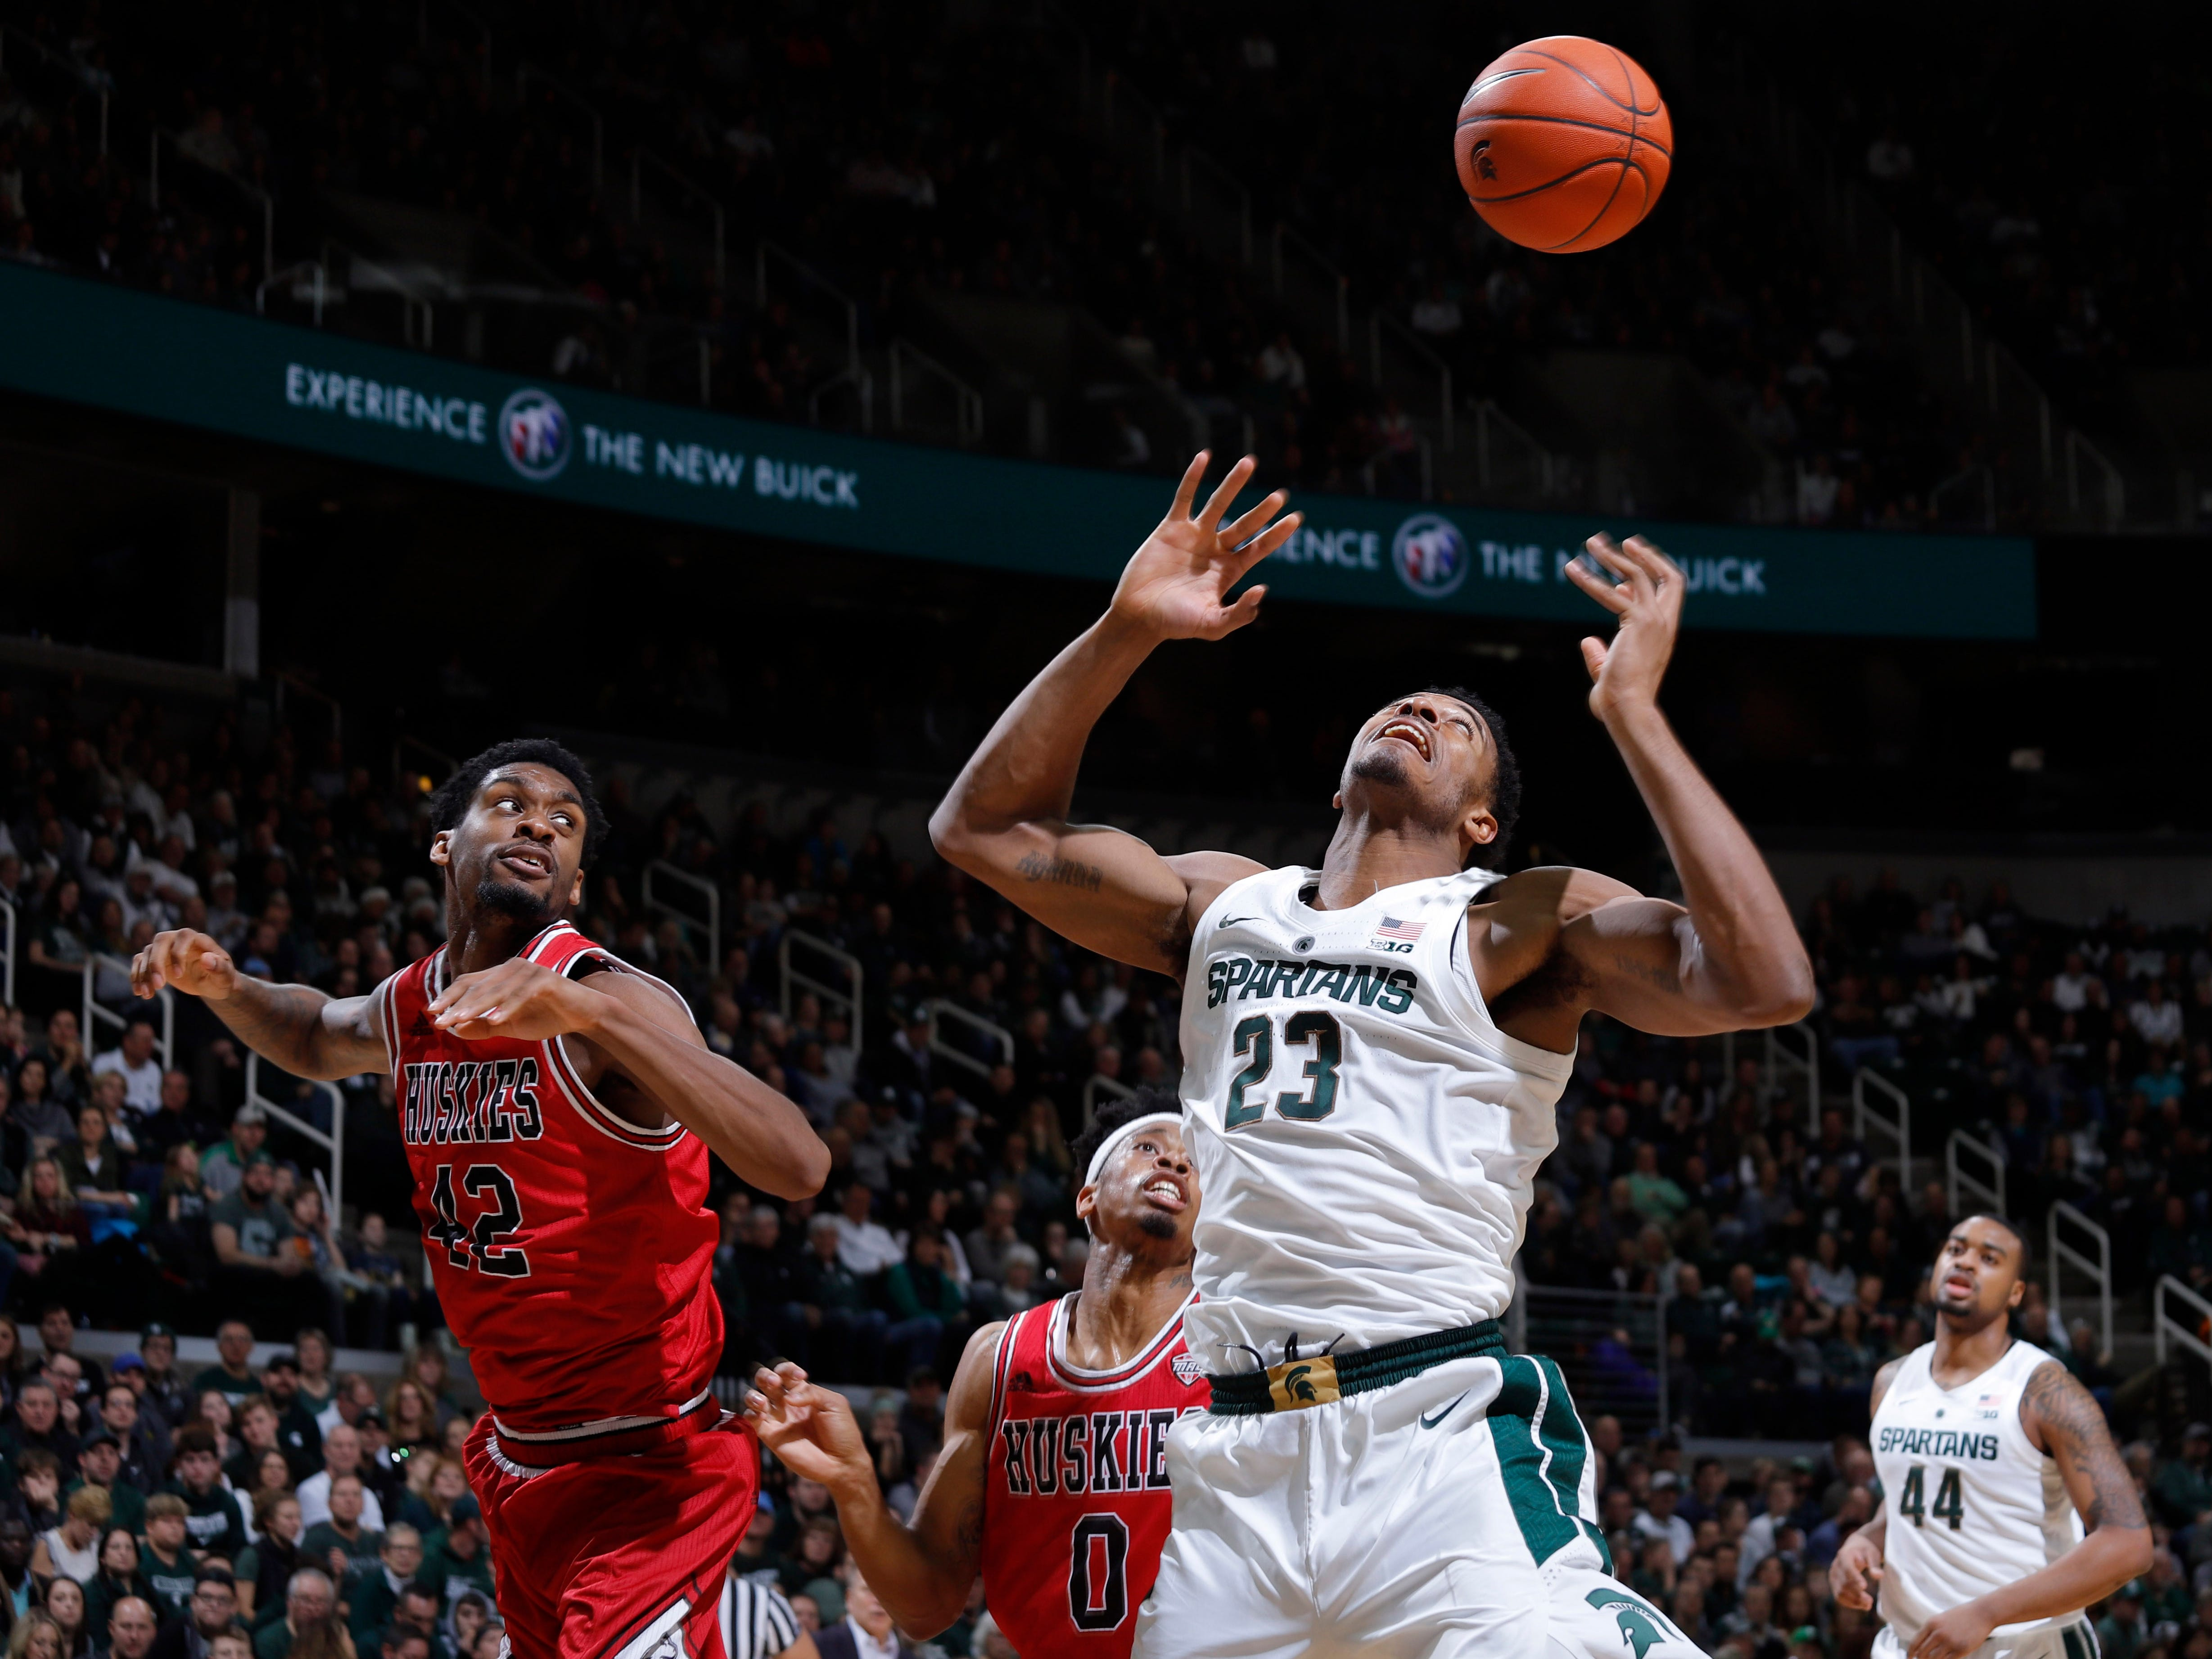 Michigan State's Xavier Tillman (23) and Northern Illinois' Levi Bradley, left, and Dante Thorpe (0) reach for a rebound, Saturday, Dec. 29, 2018, in East Lansing, Mich.